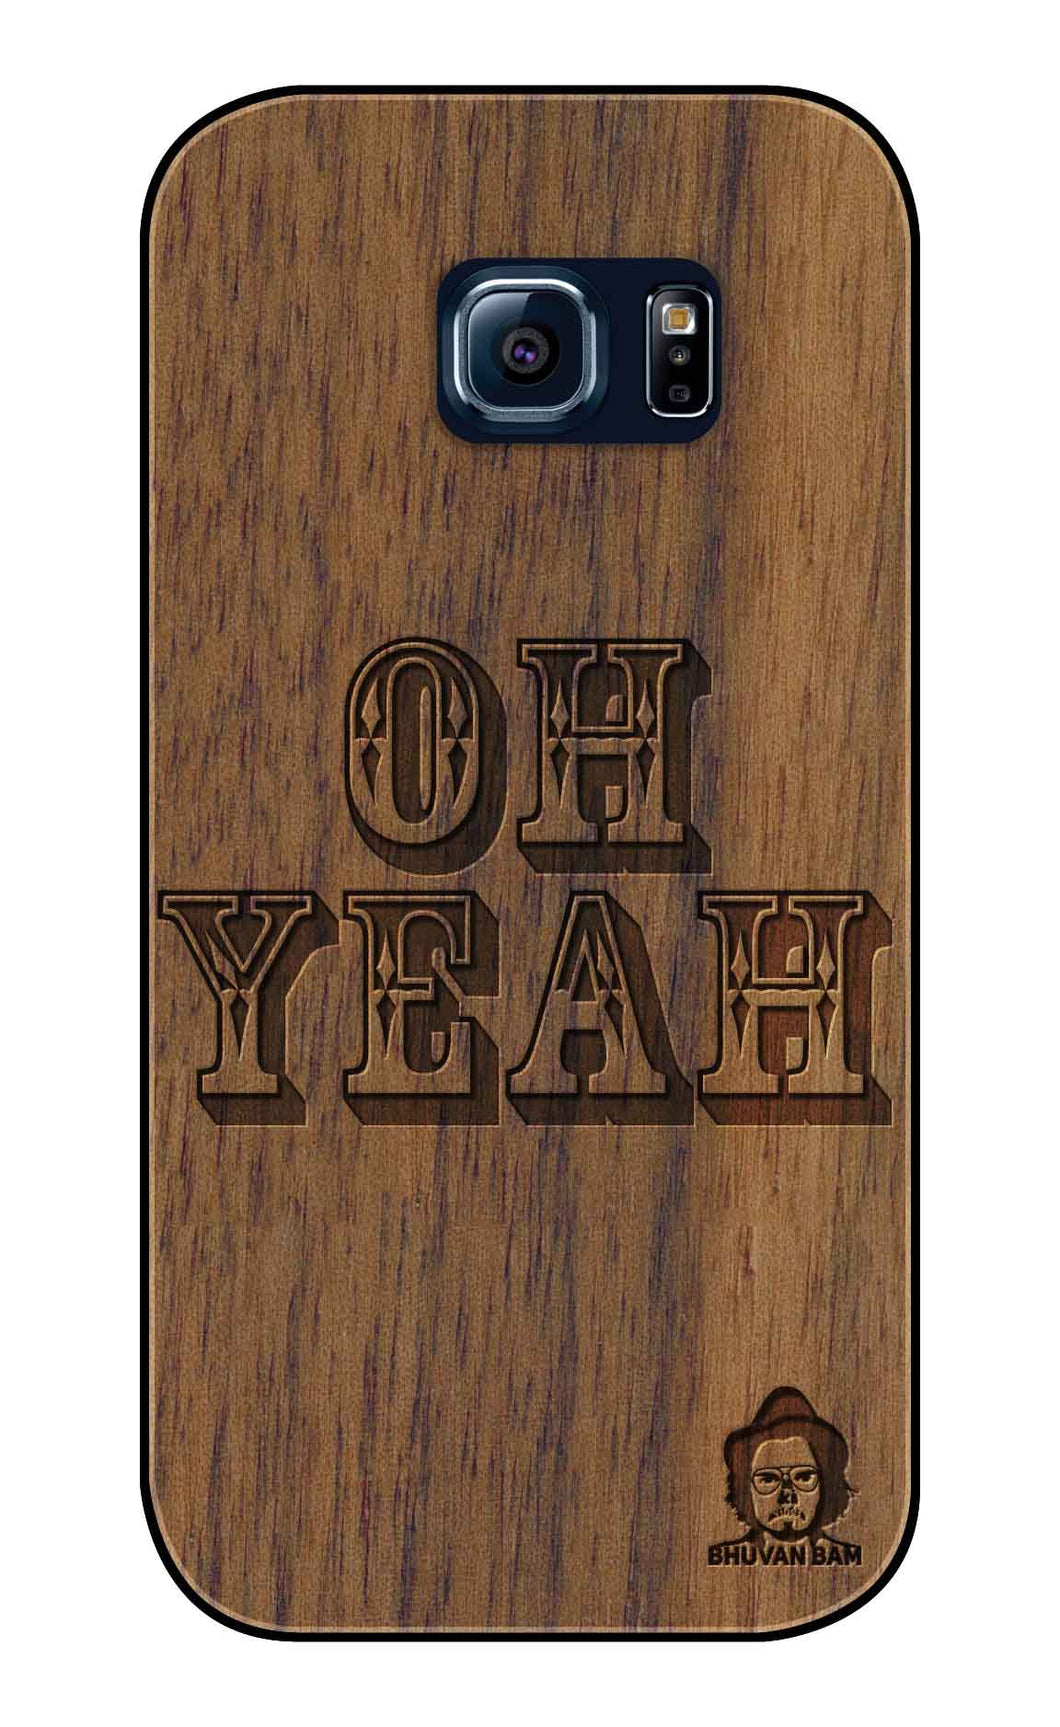 Wallnut Wood Sameer Fudd*** Edition For Samsung s6 Edge